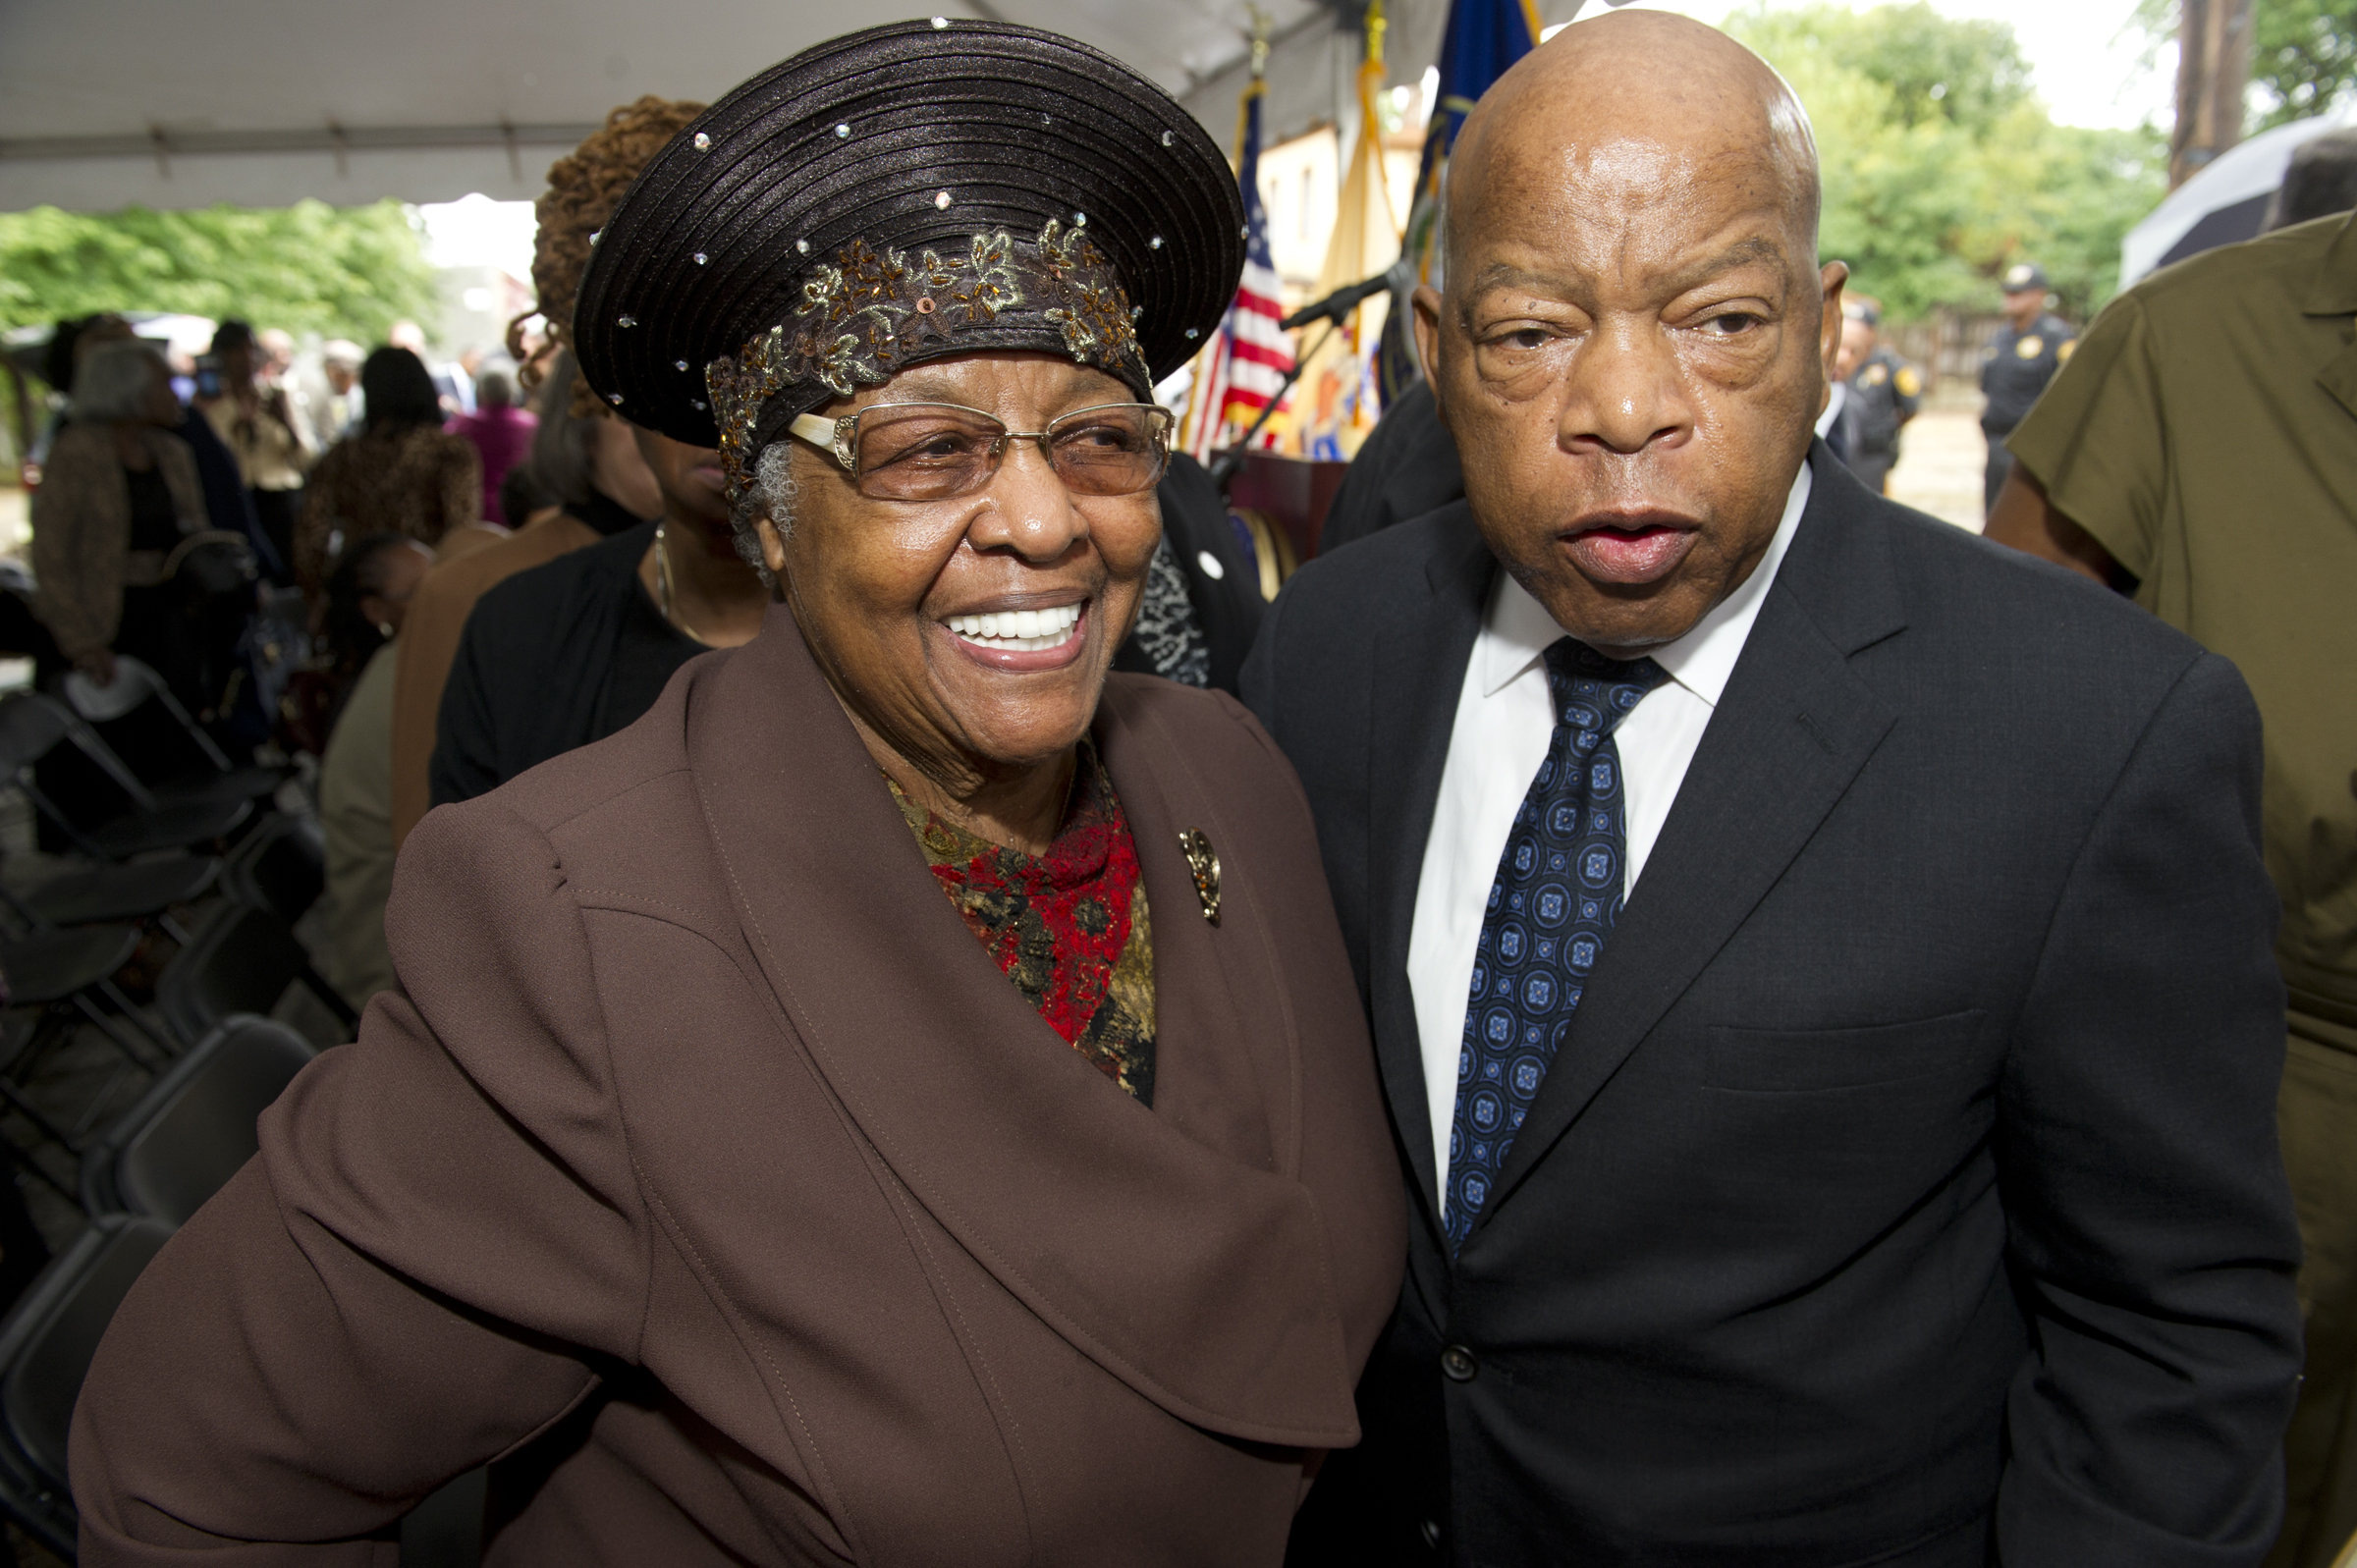 Civil right icon and U. S. Rep. John Lewis meets with Jeanette Lily Hunt during his visit to Walnut Street in Camden at the house where Rev. Dr. Martin Luther King Jr. lived while a student. Avi Steinhardt/ For the Philadelphia Inquirer